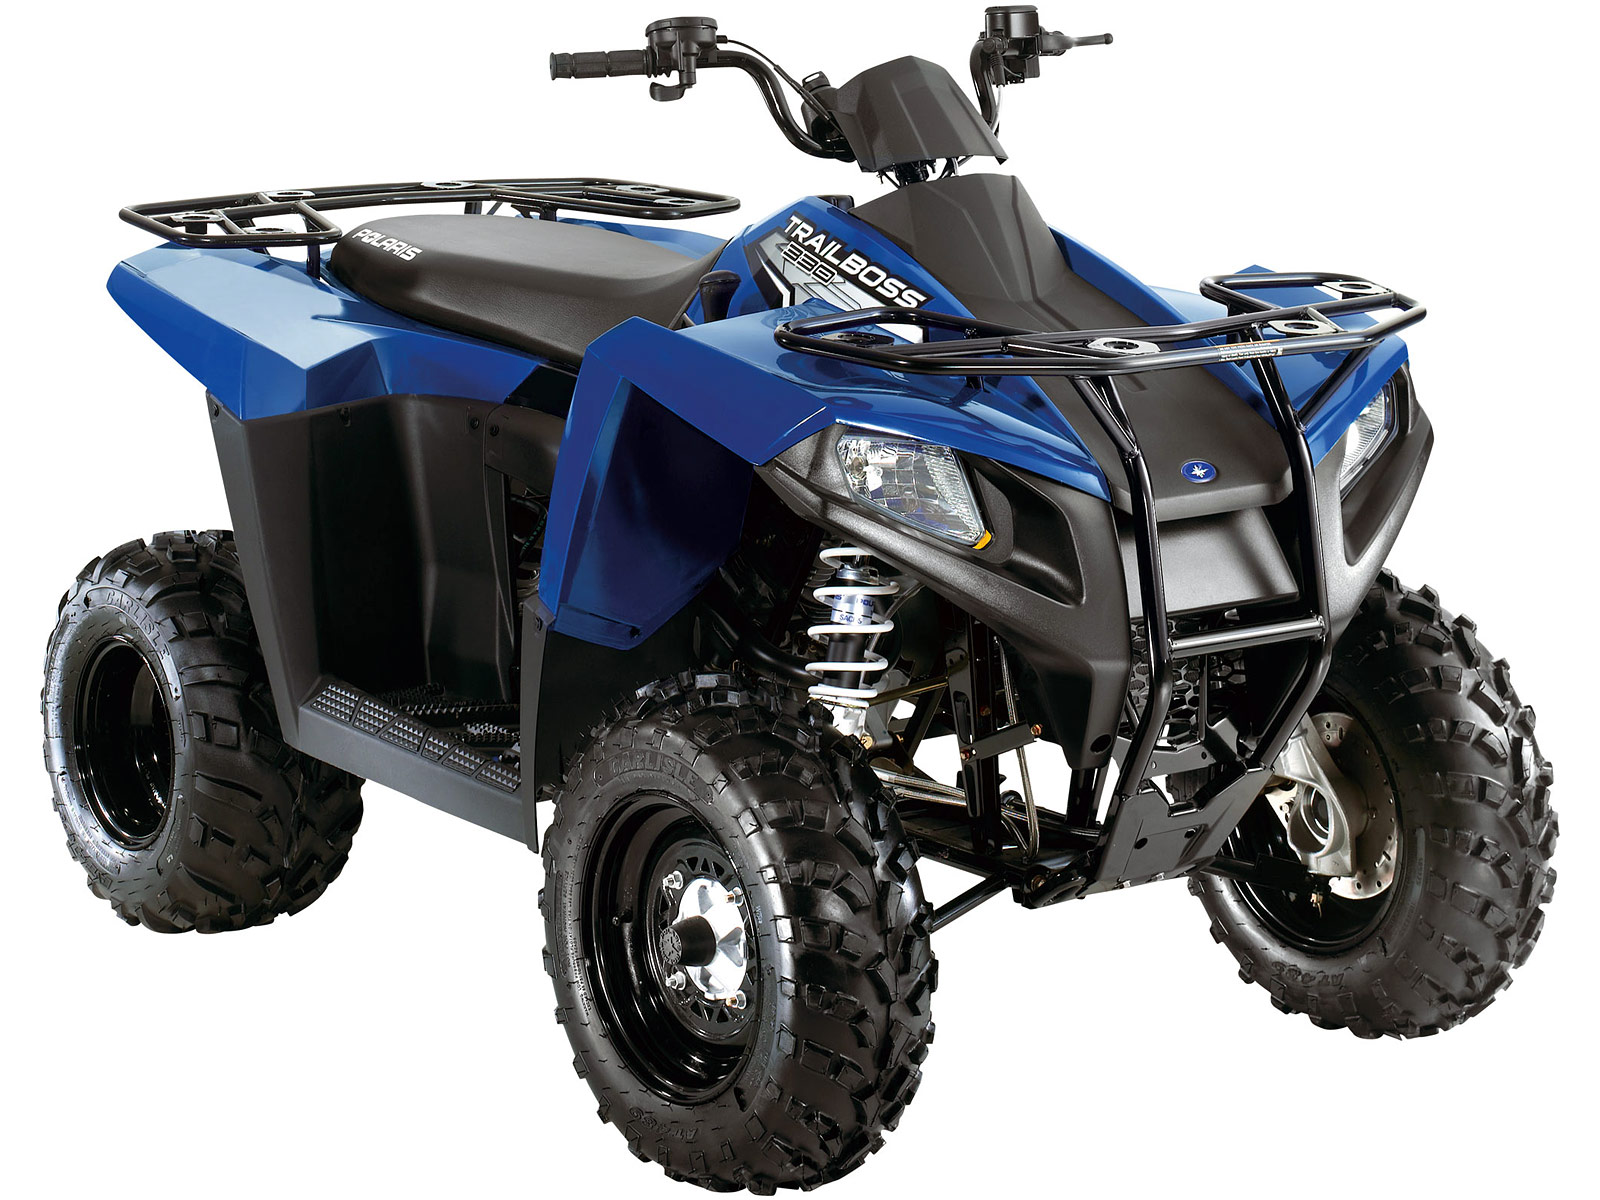 2012 polaris trail boss 330 insurance information. Black Bedroom Furniture Sets. Home Design Ideas